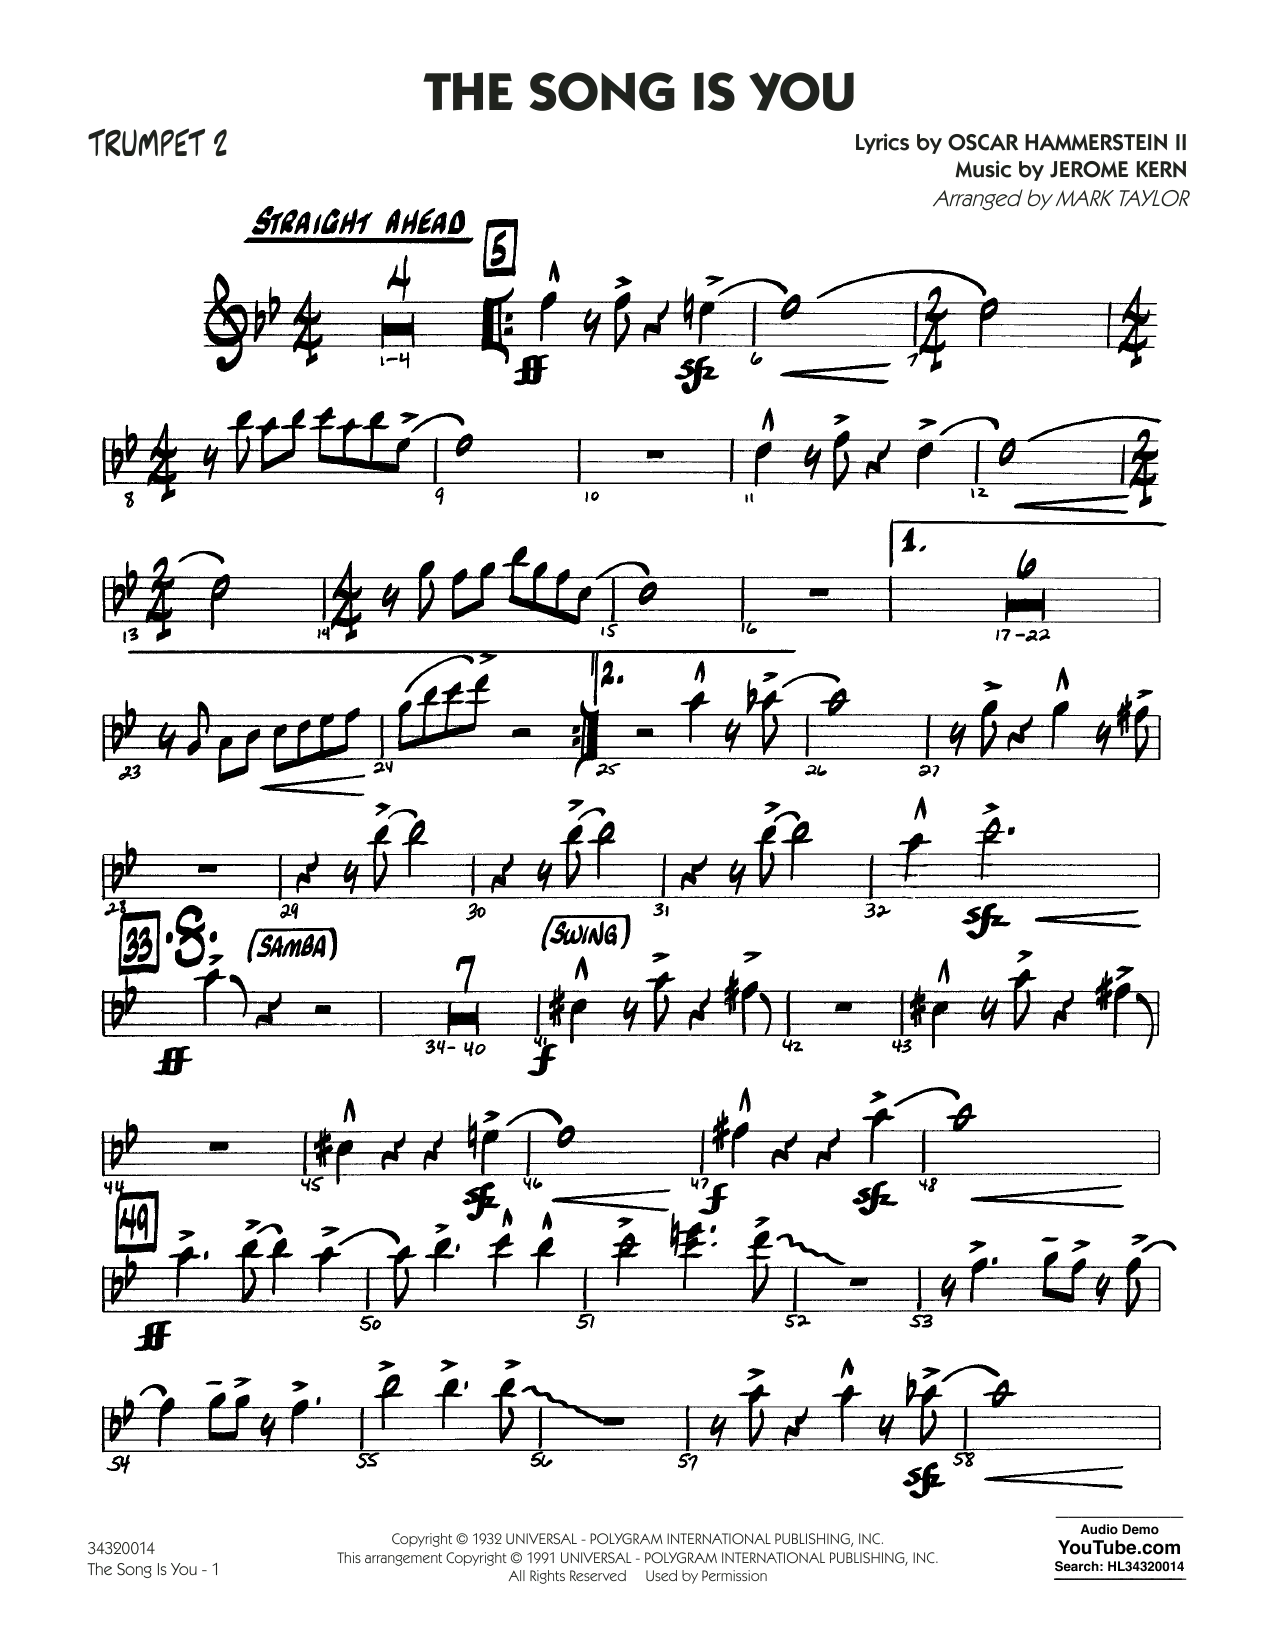 Oscar Hammerstein II - The Song Is You - Trumpet 2